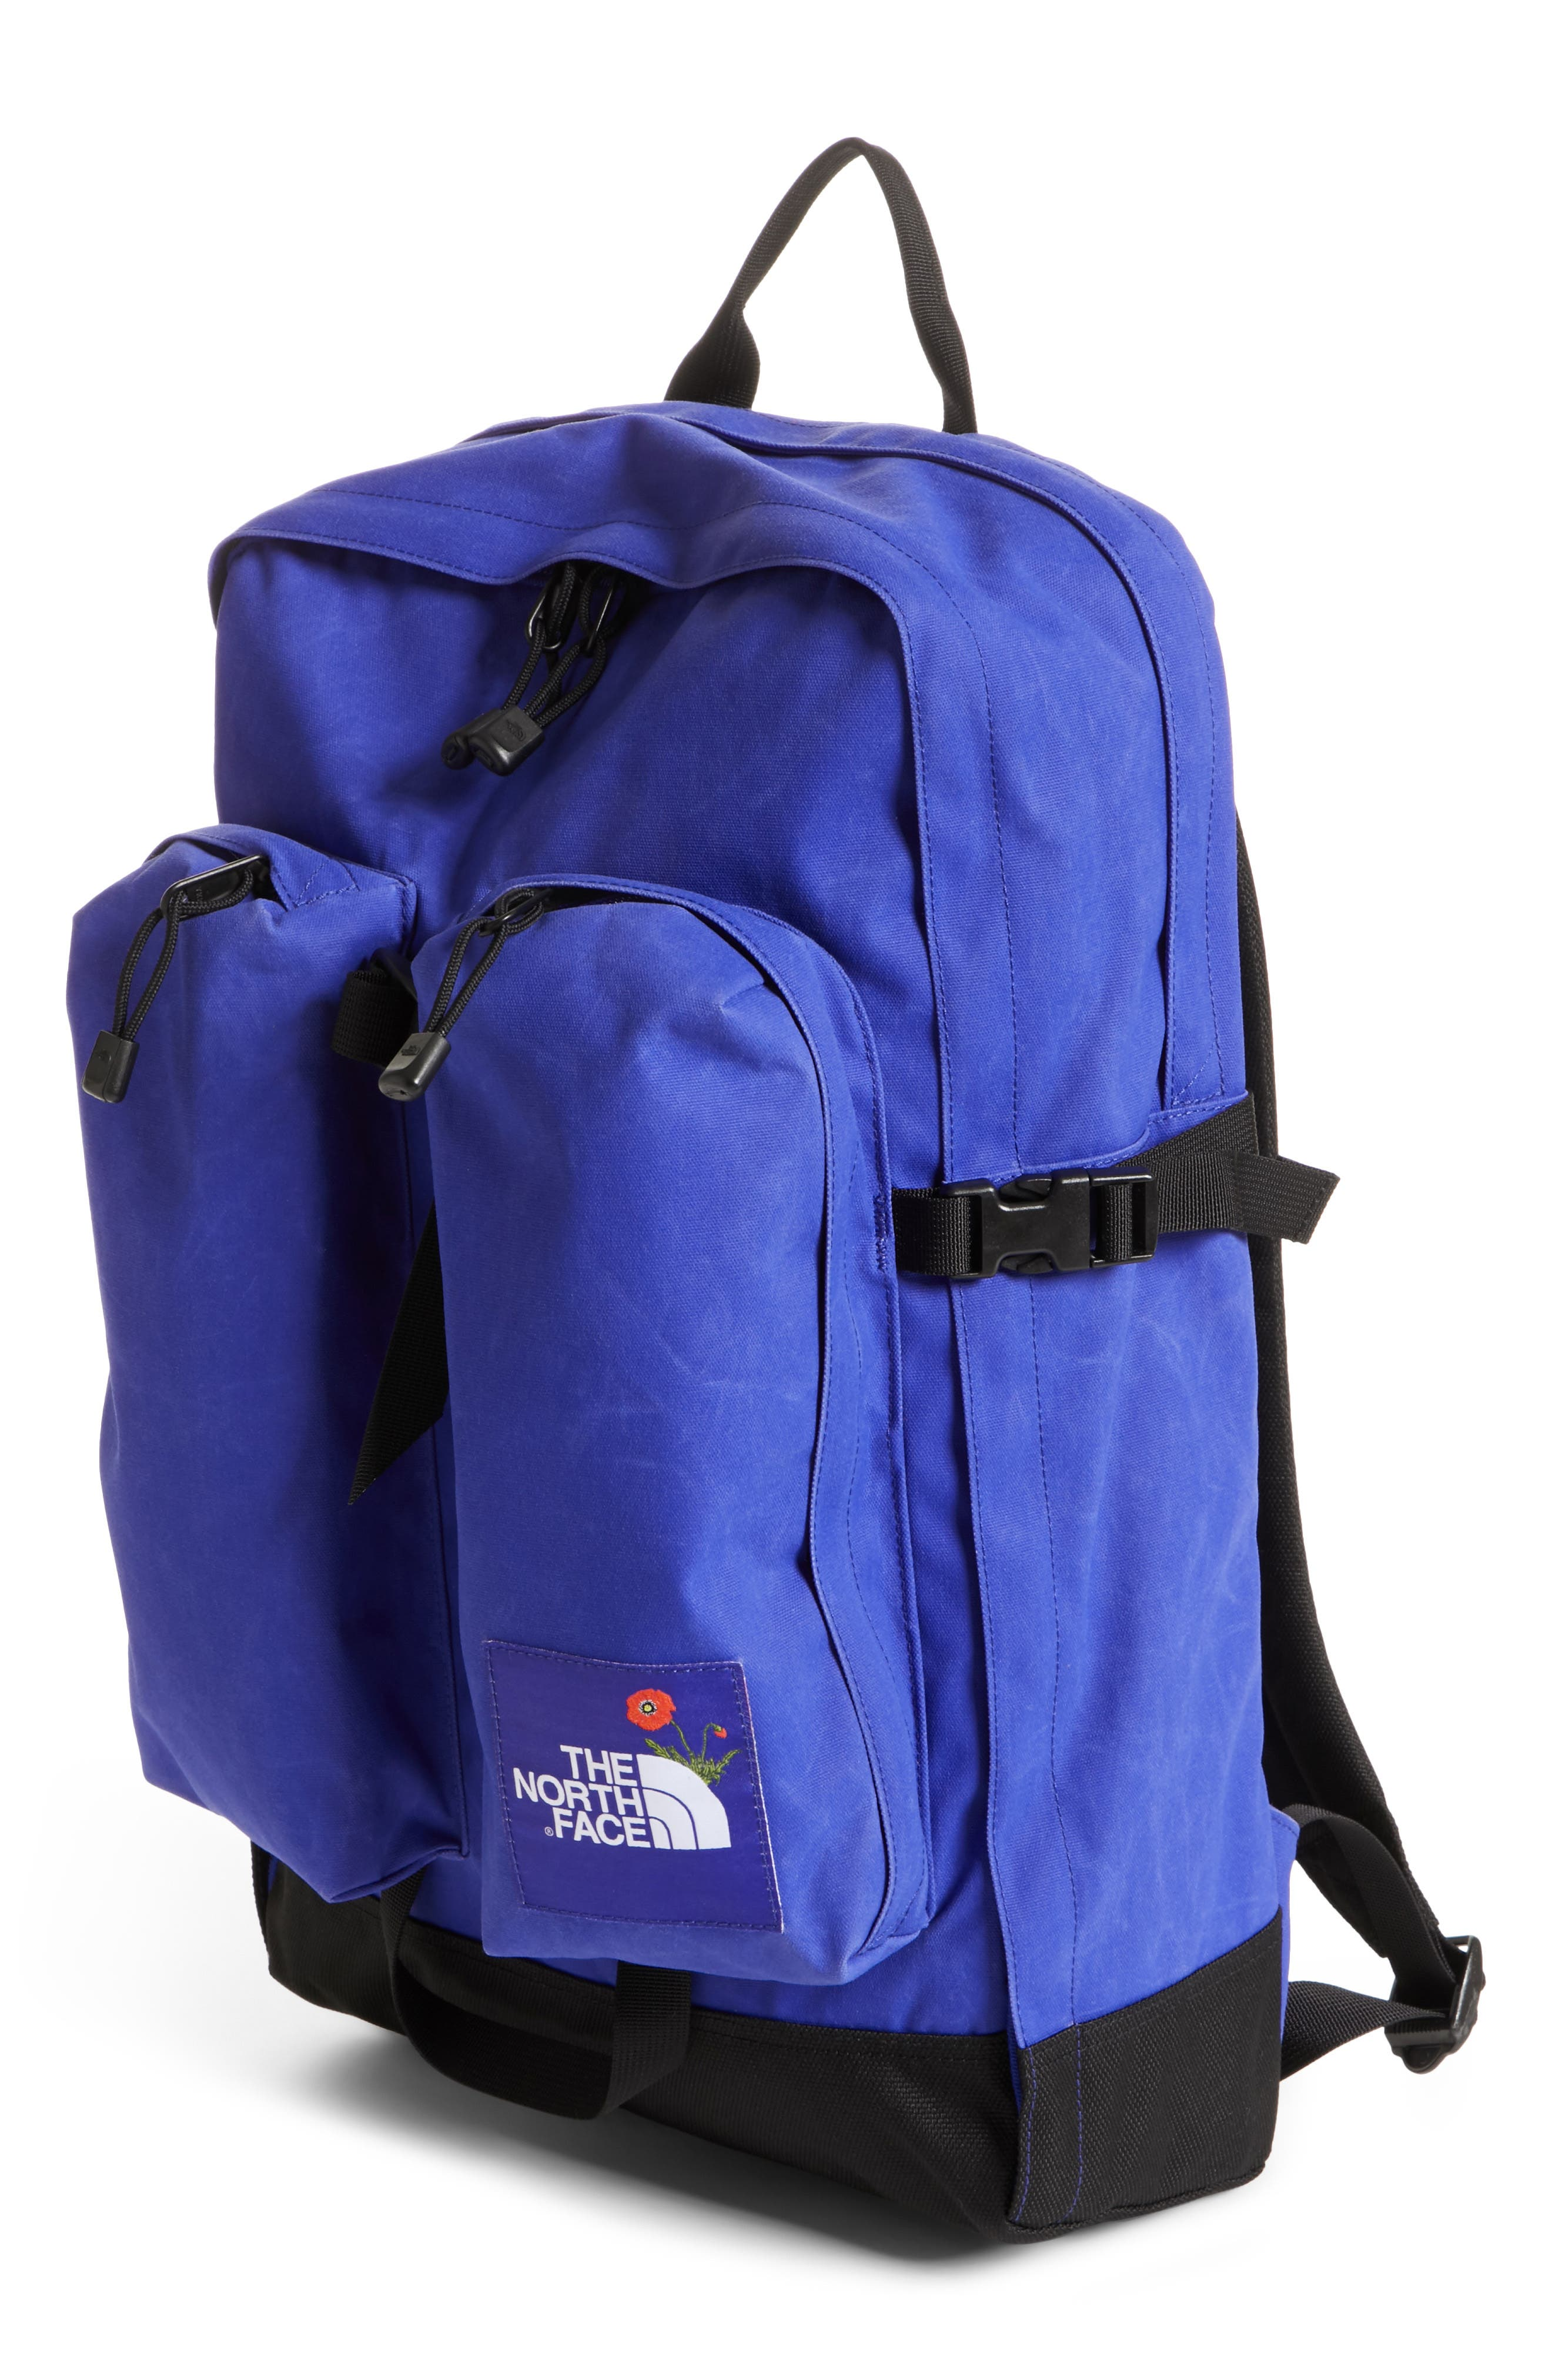 The North Face OK Crevasse Backpack